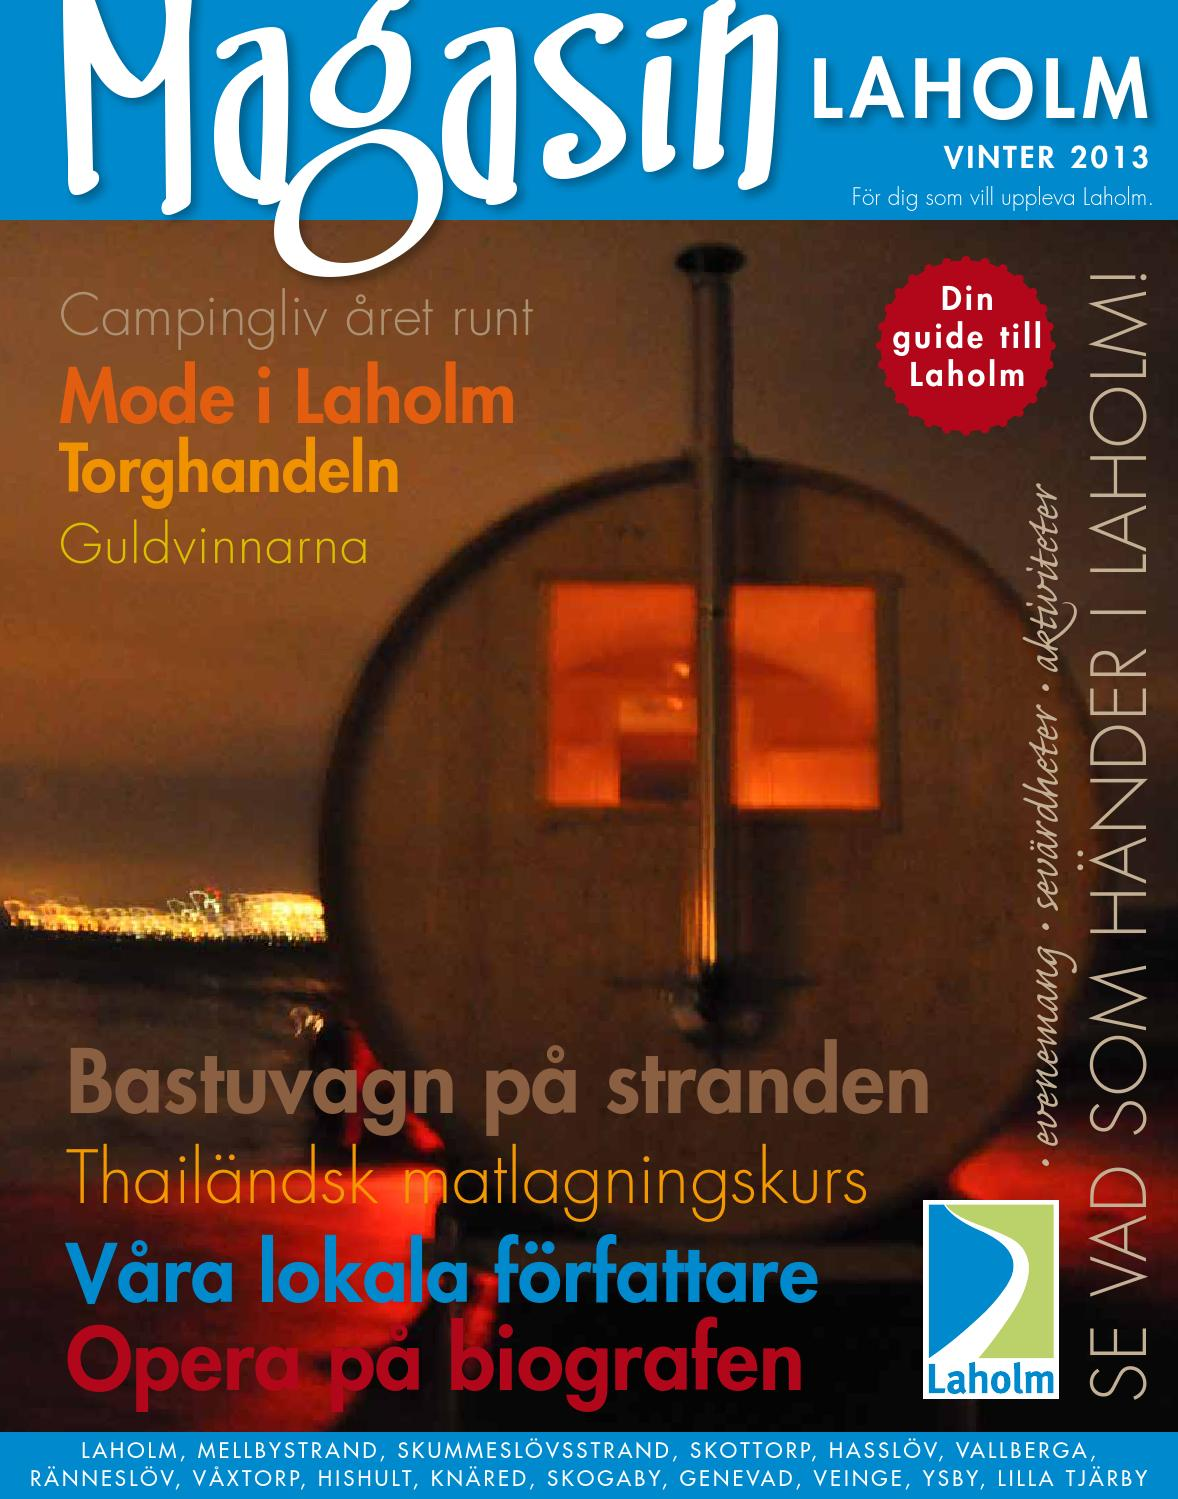 Magasin Laholm vr 2012 by MacMedia - issuu